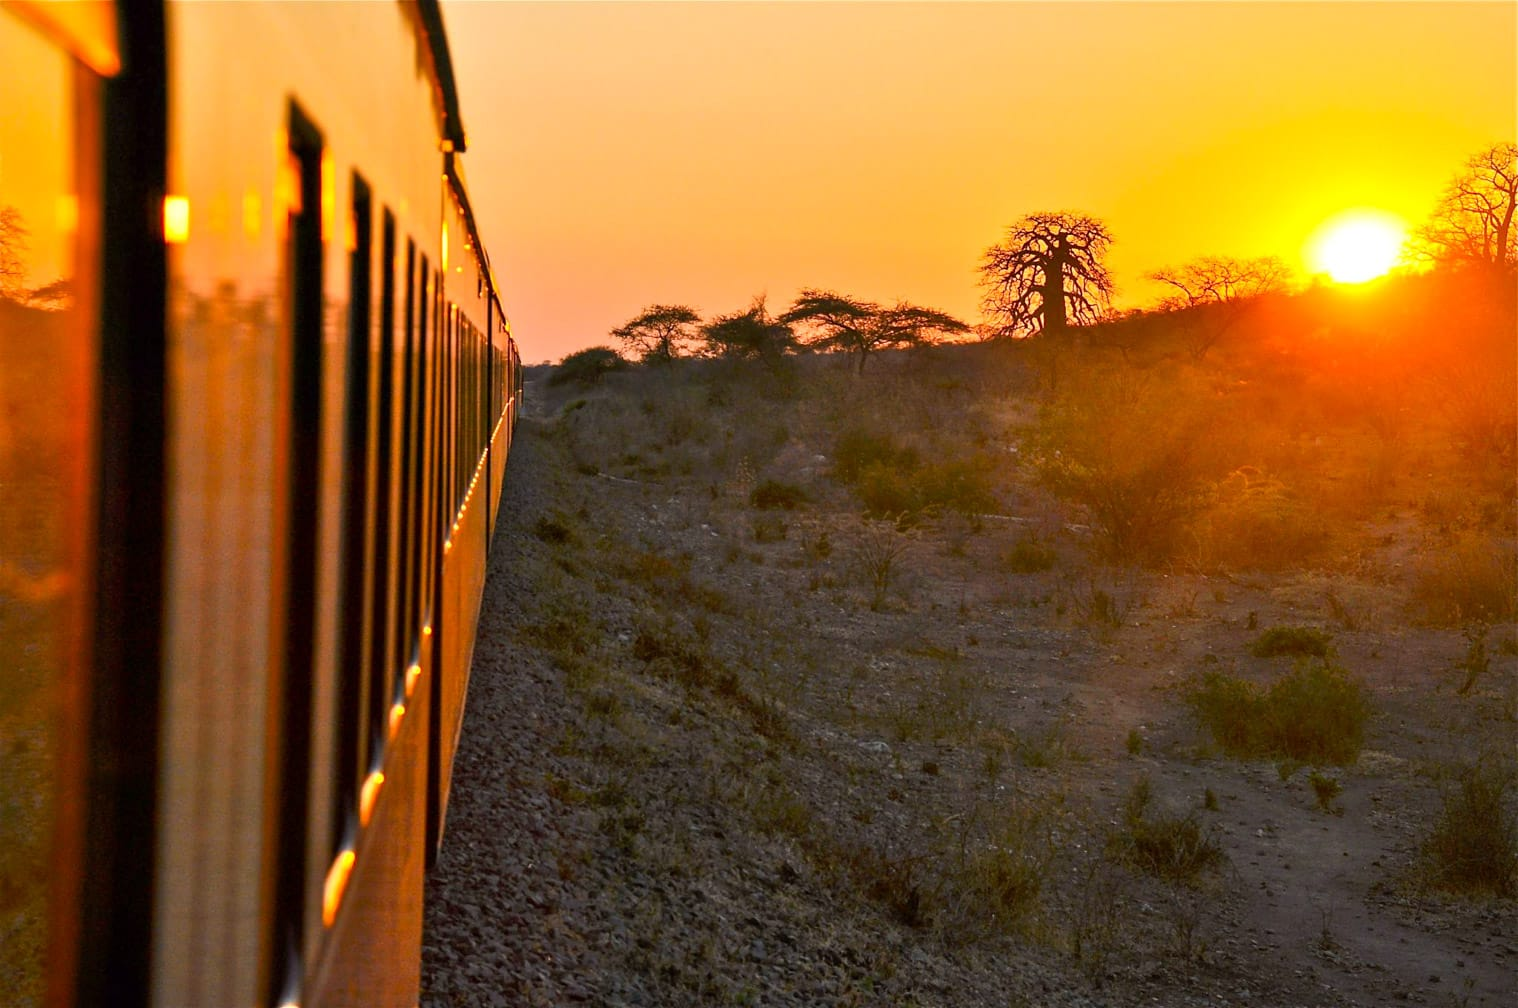 Sunset on the Dar es Salaam to Lobito: Trail of Two Oceans journey